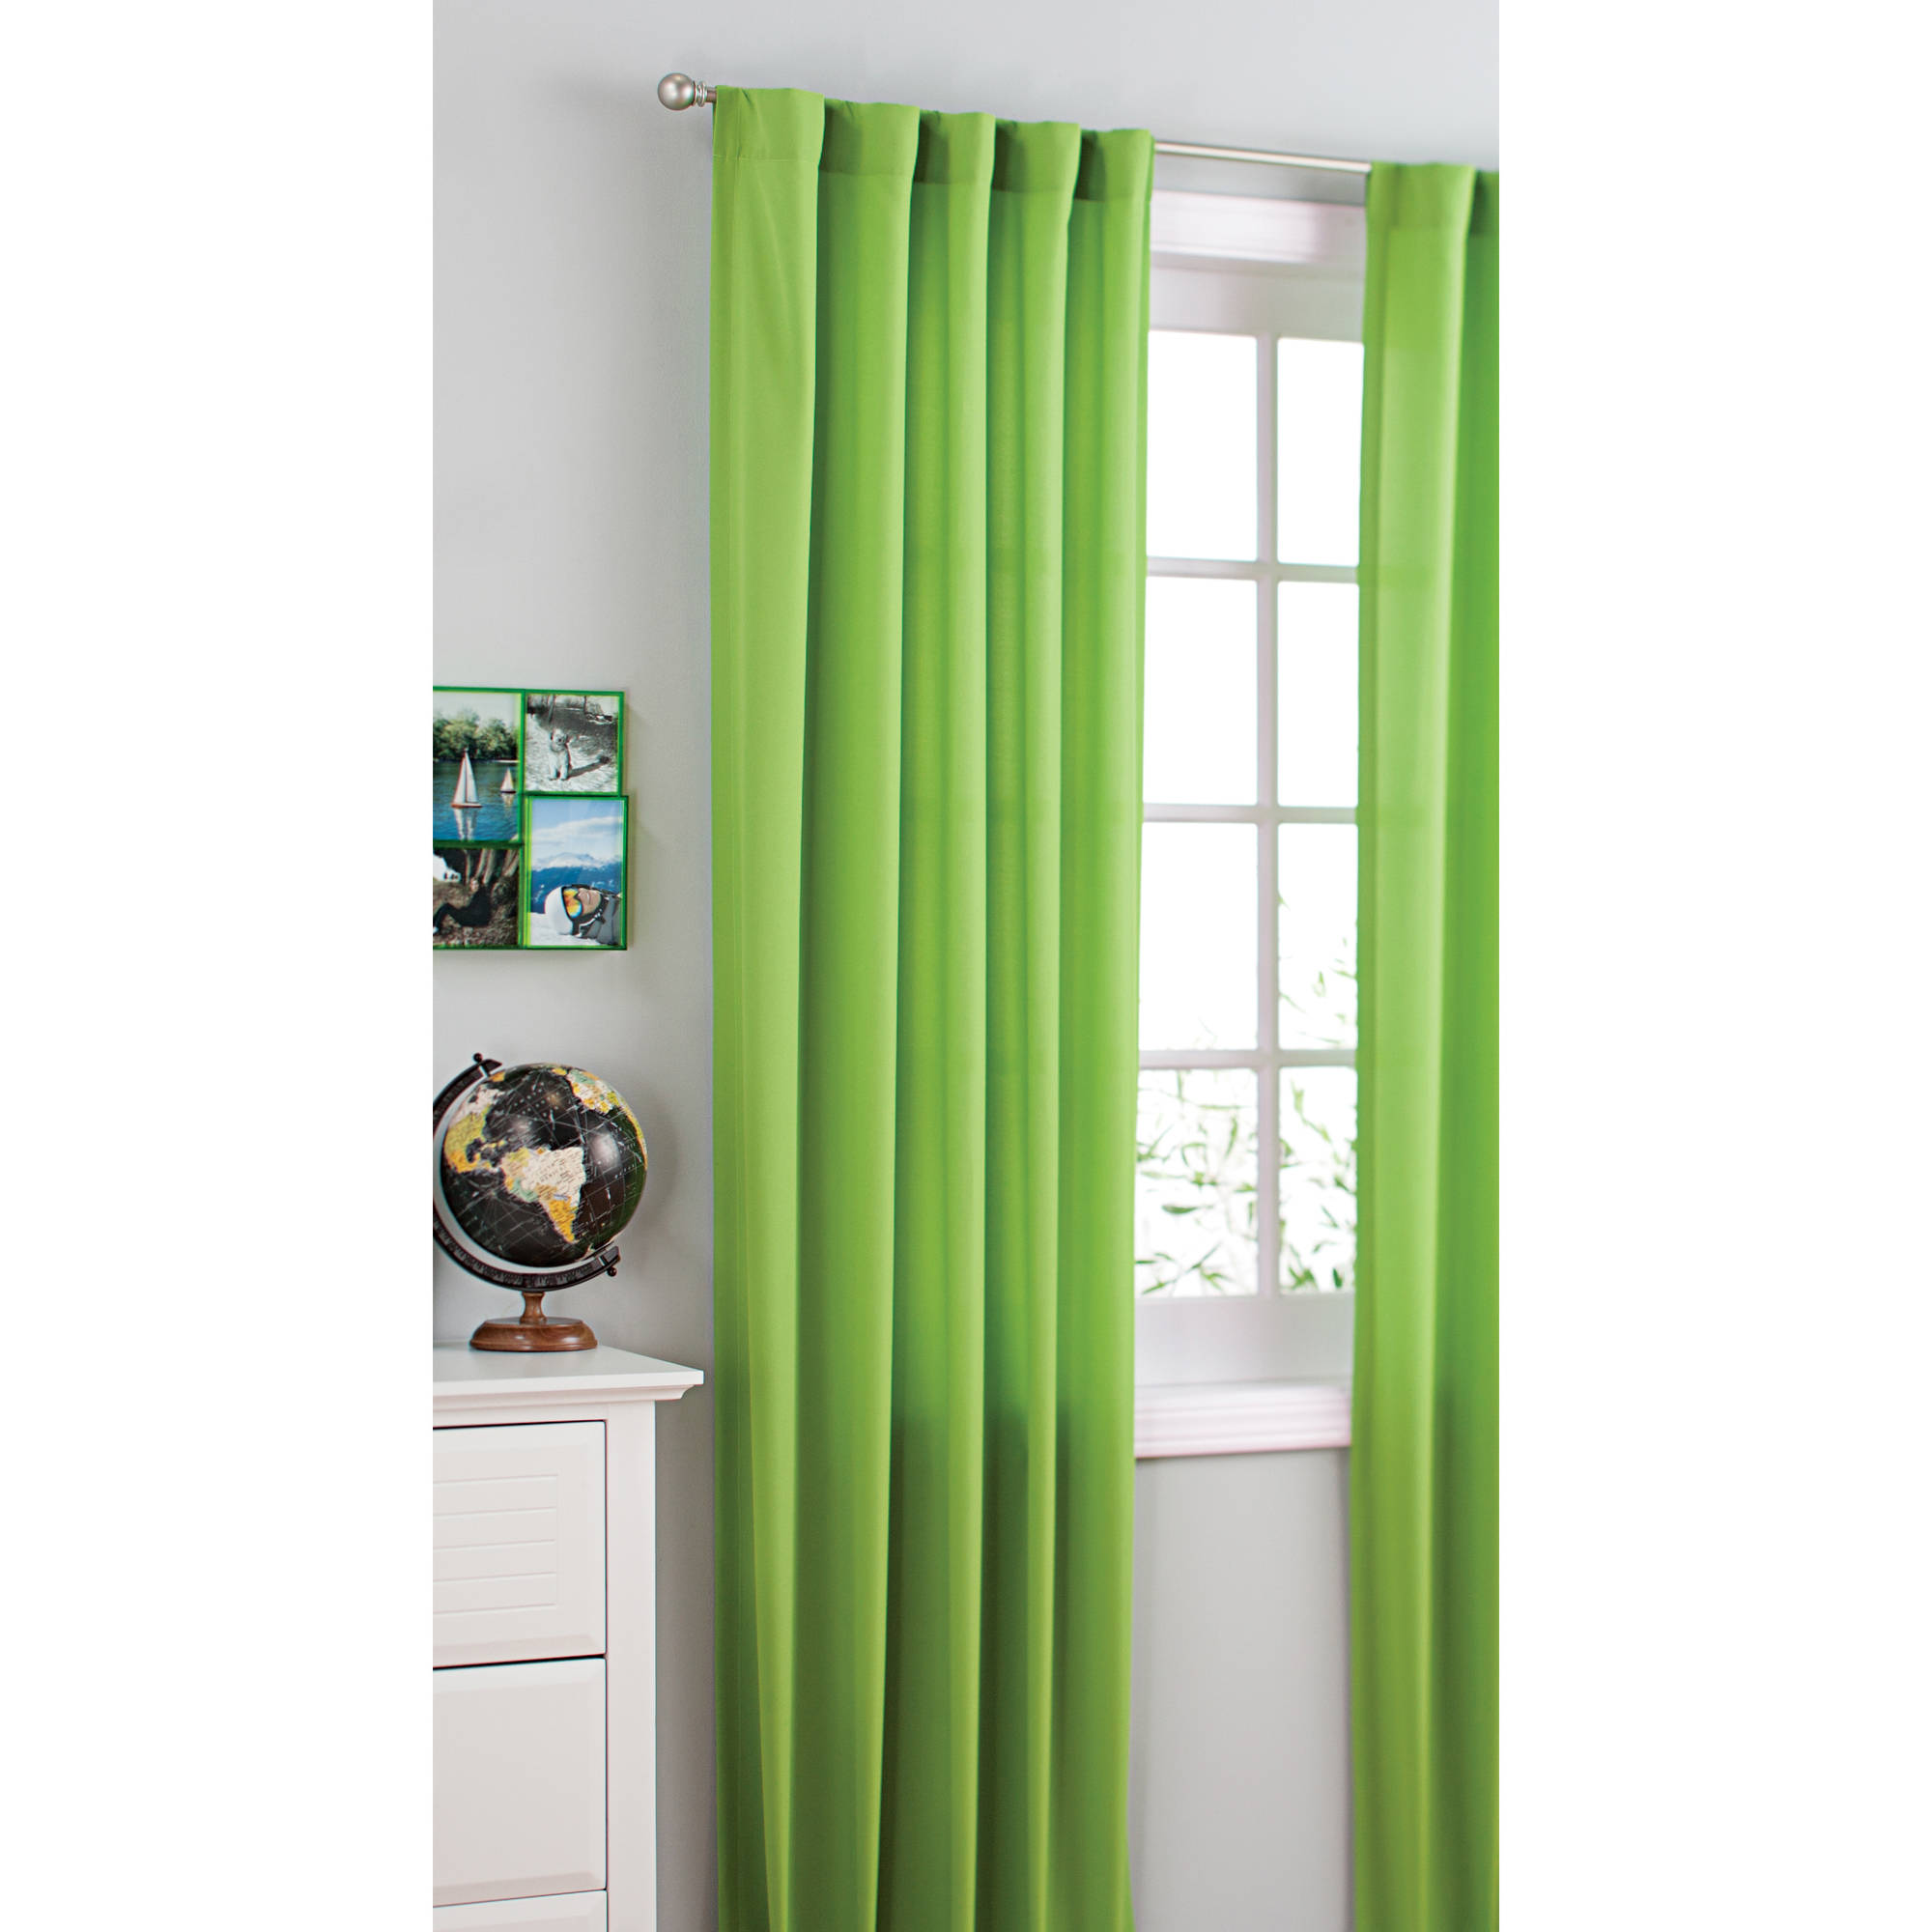 Walmart lime green curtains - Walmart Lime Green Curtains 35